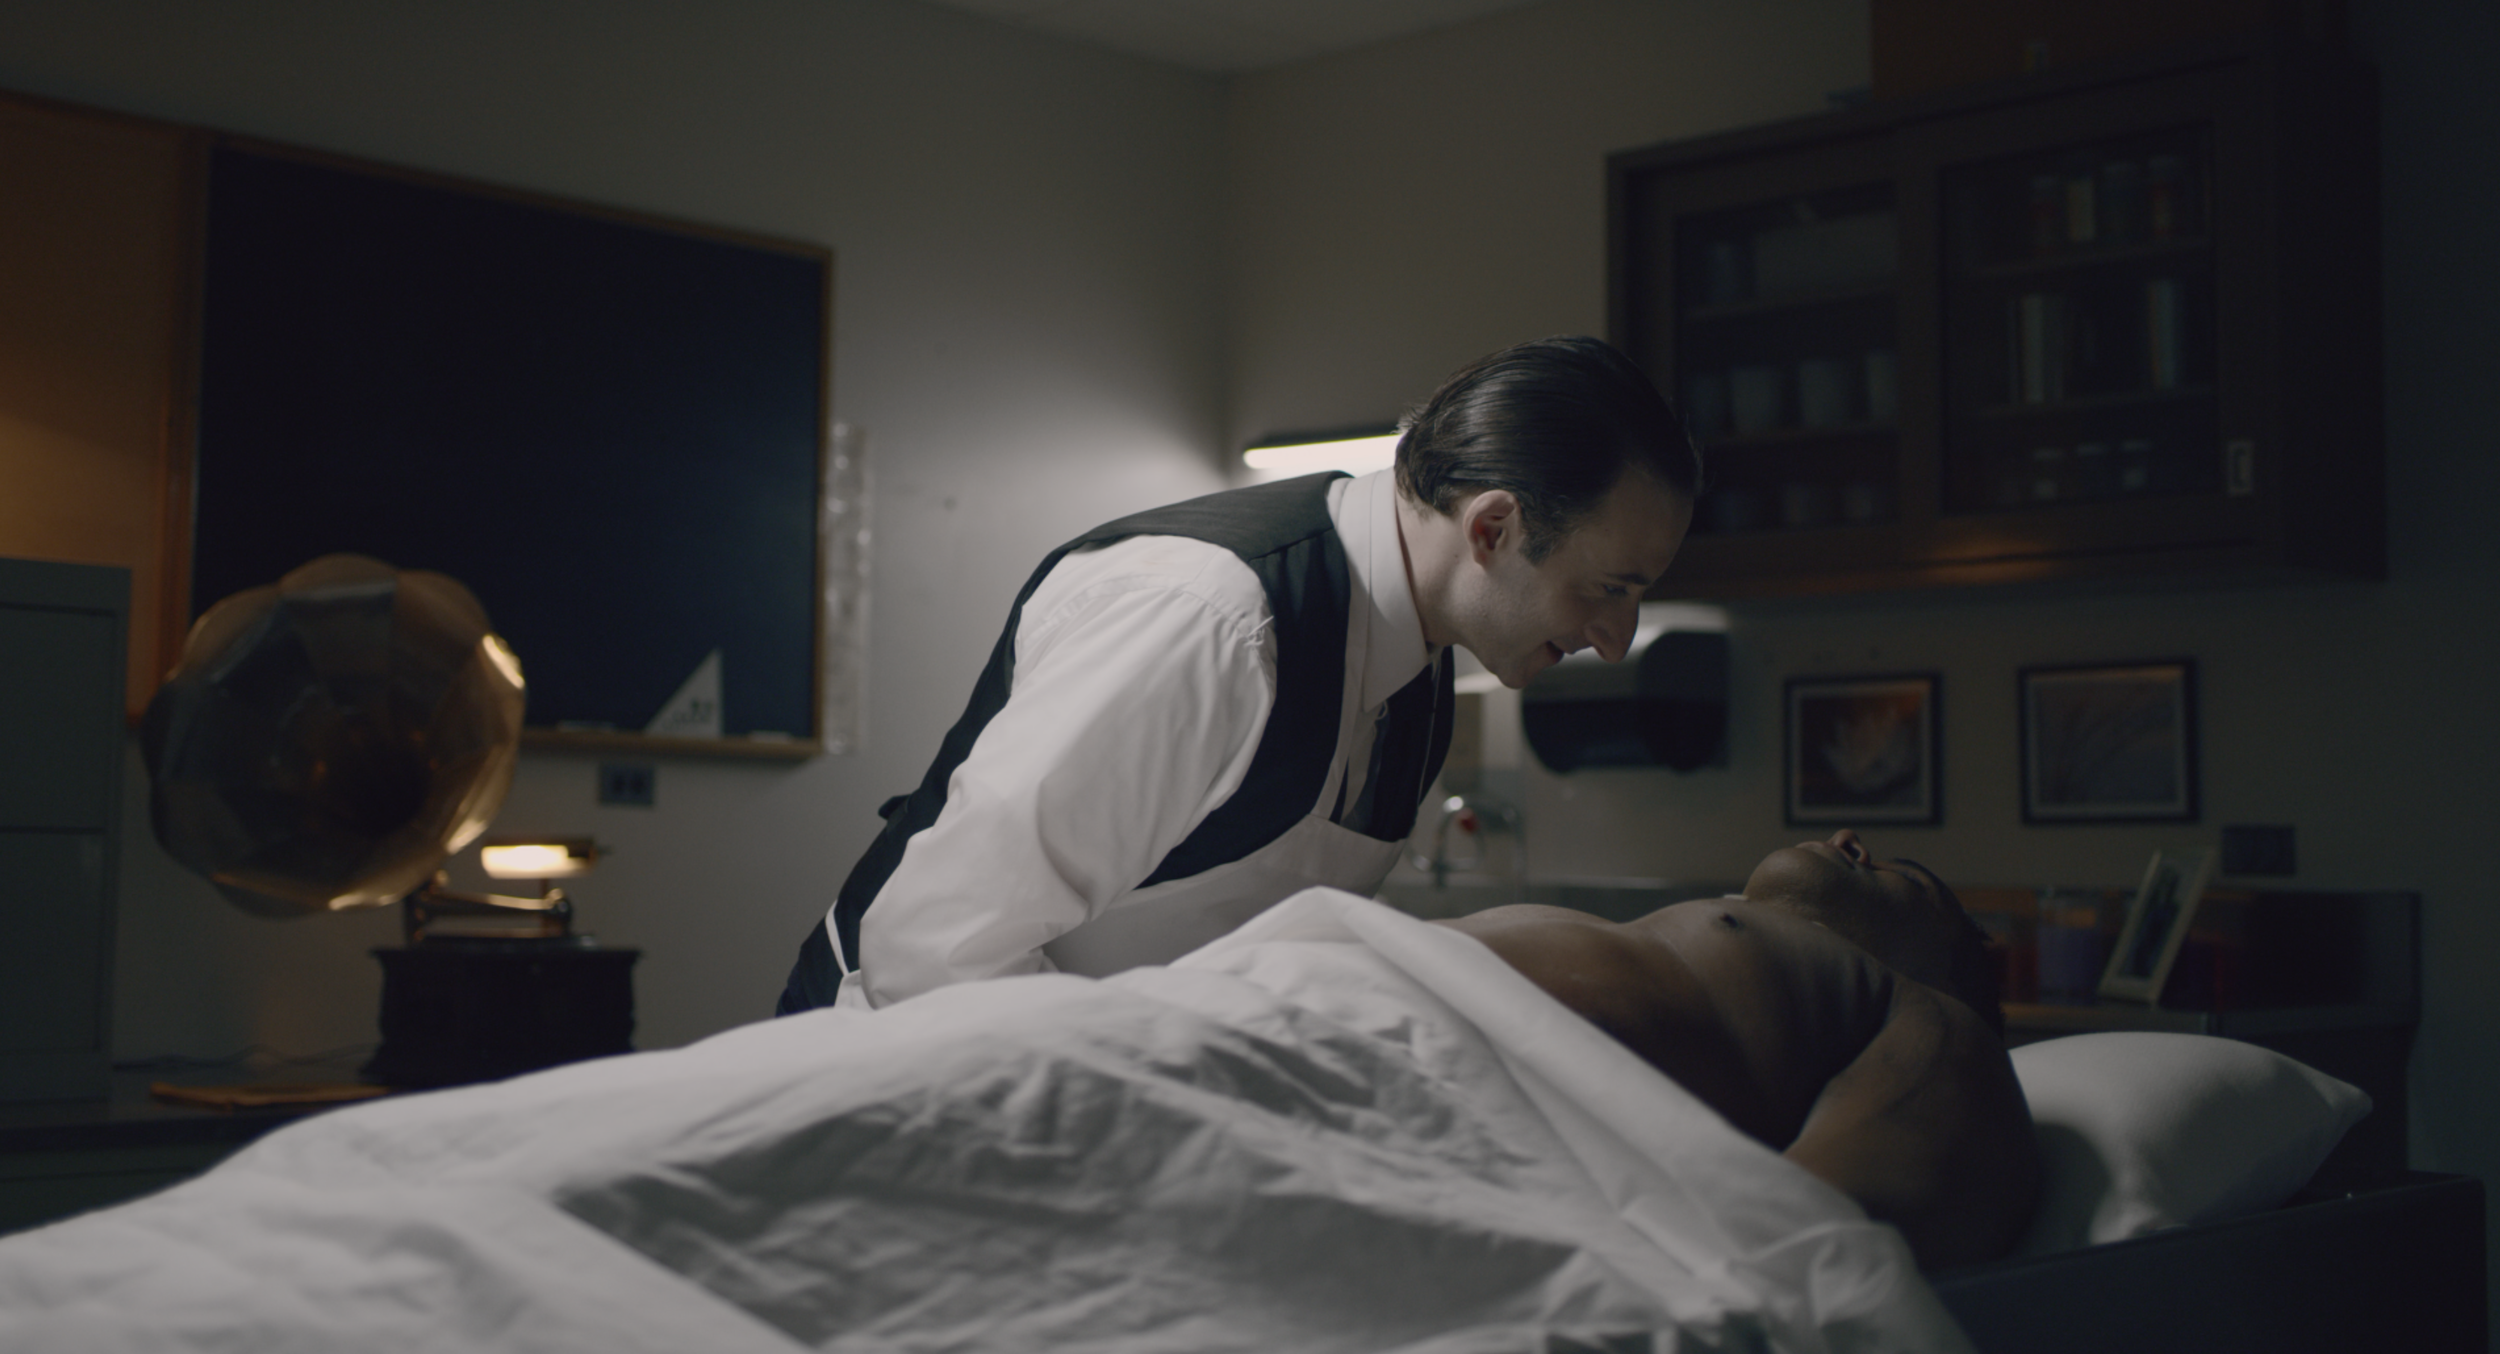 'Mr. Sam' Gets Uncomfortable With a Corpse - At this year's Dances With Films festival, director Zeus Kontoyannis will be bringing his short film Mr. Sam for its West Coast premiere…